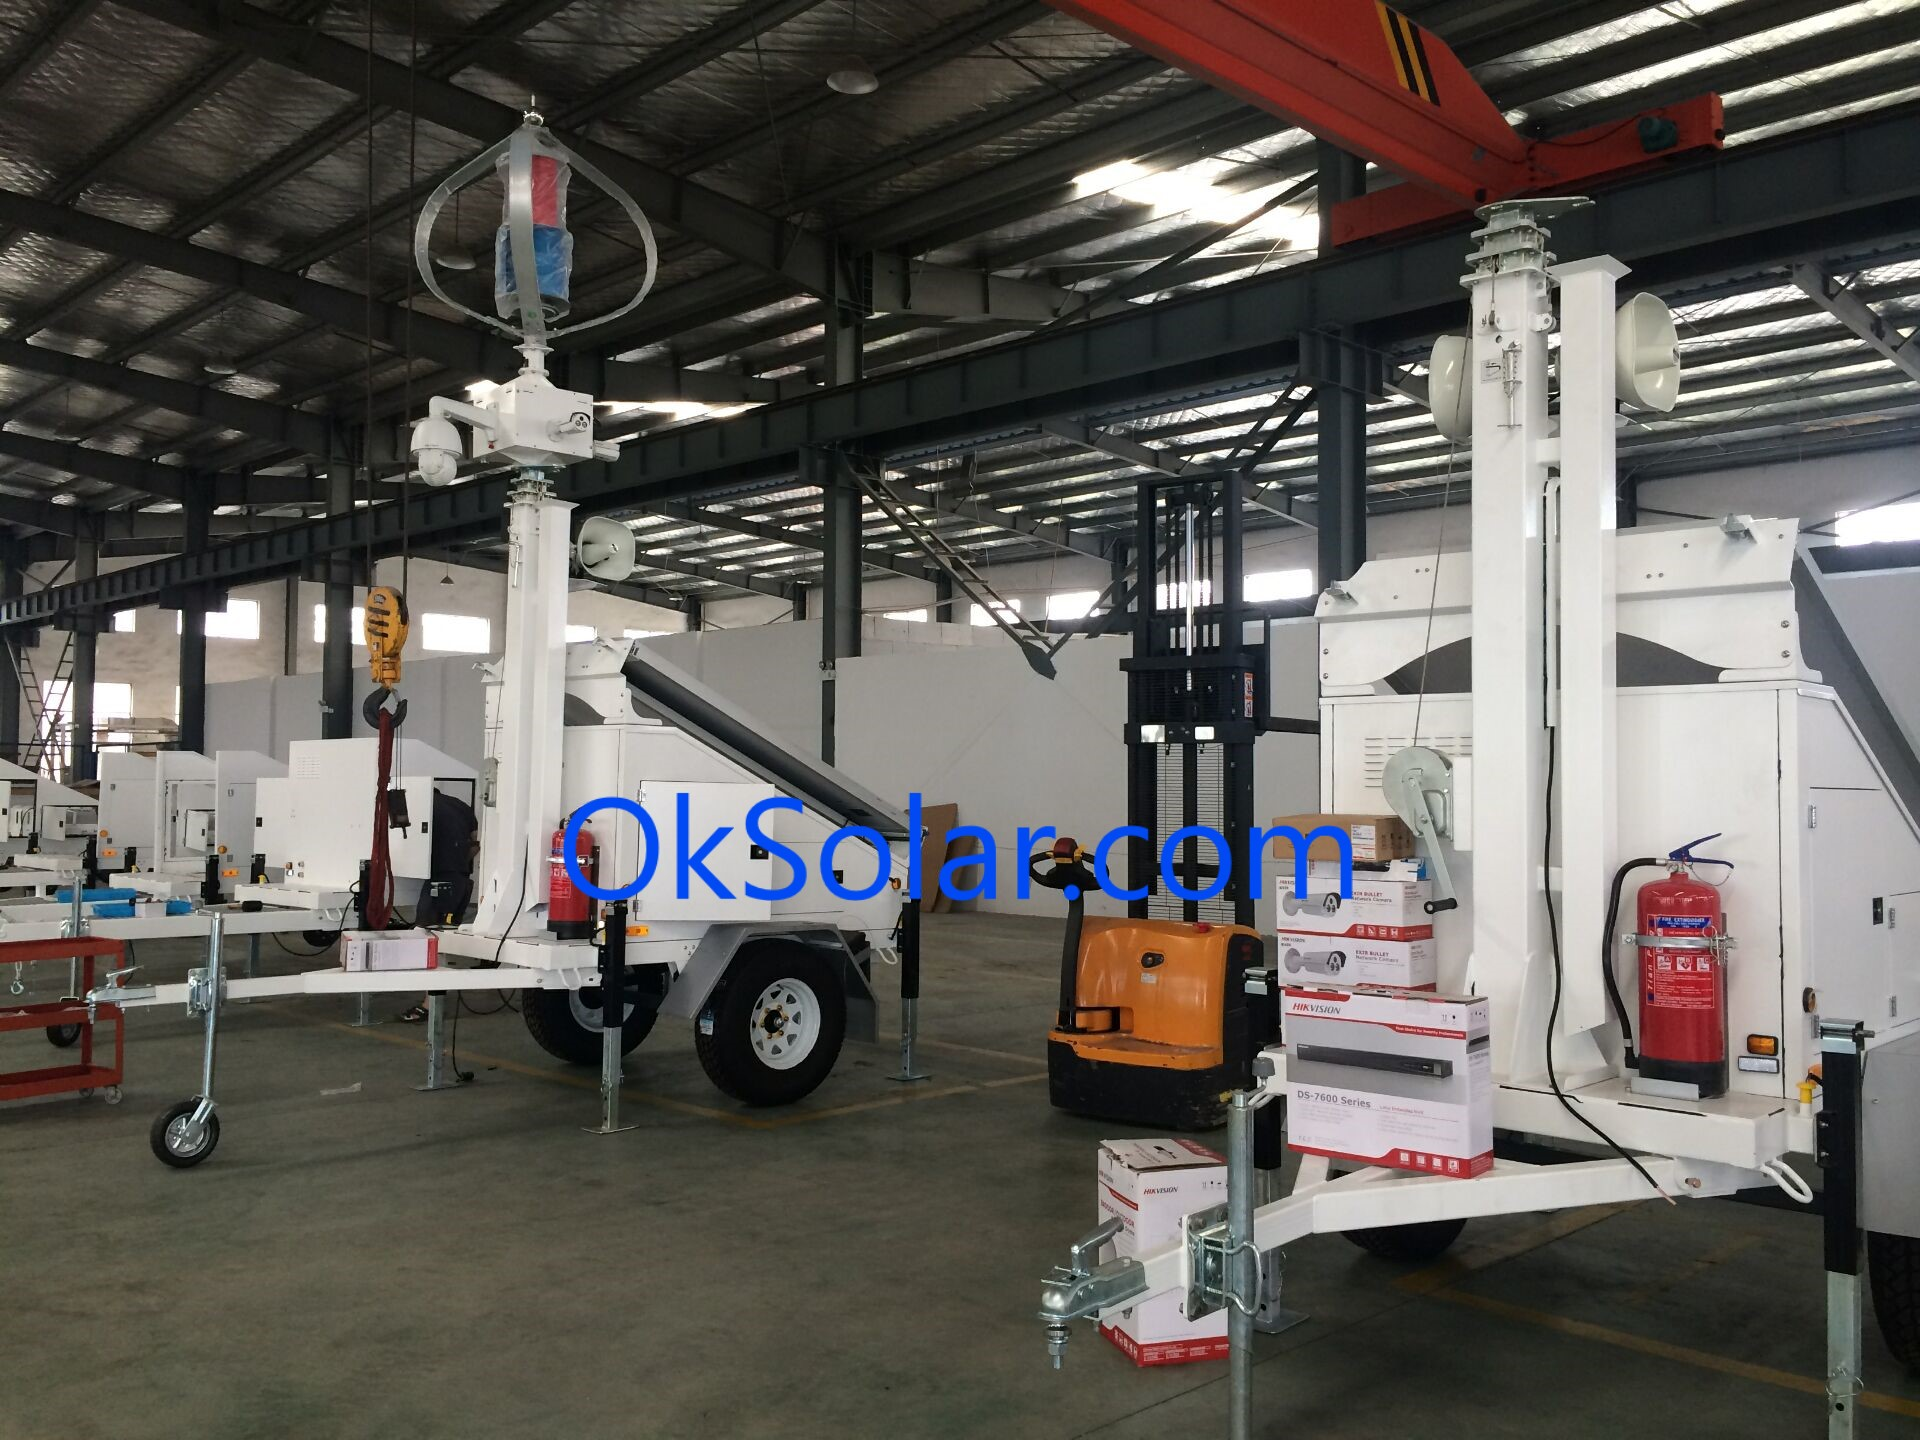 solar light tower, light tower, refugee camps solar light tower, mobile light towers, job site solar light tower, portable solar light towers, solar powered construction light tower.